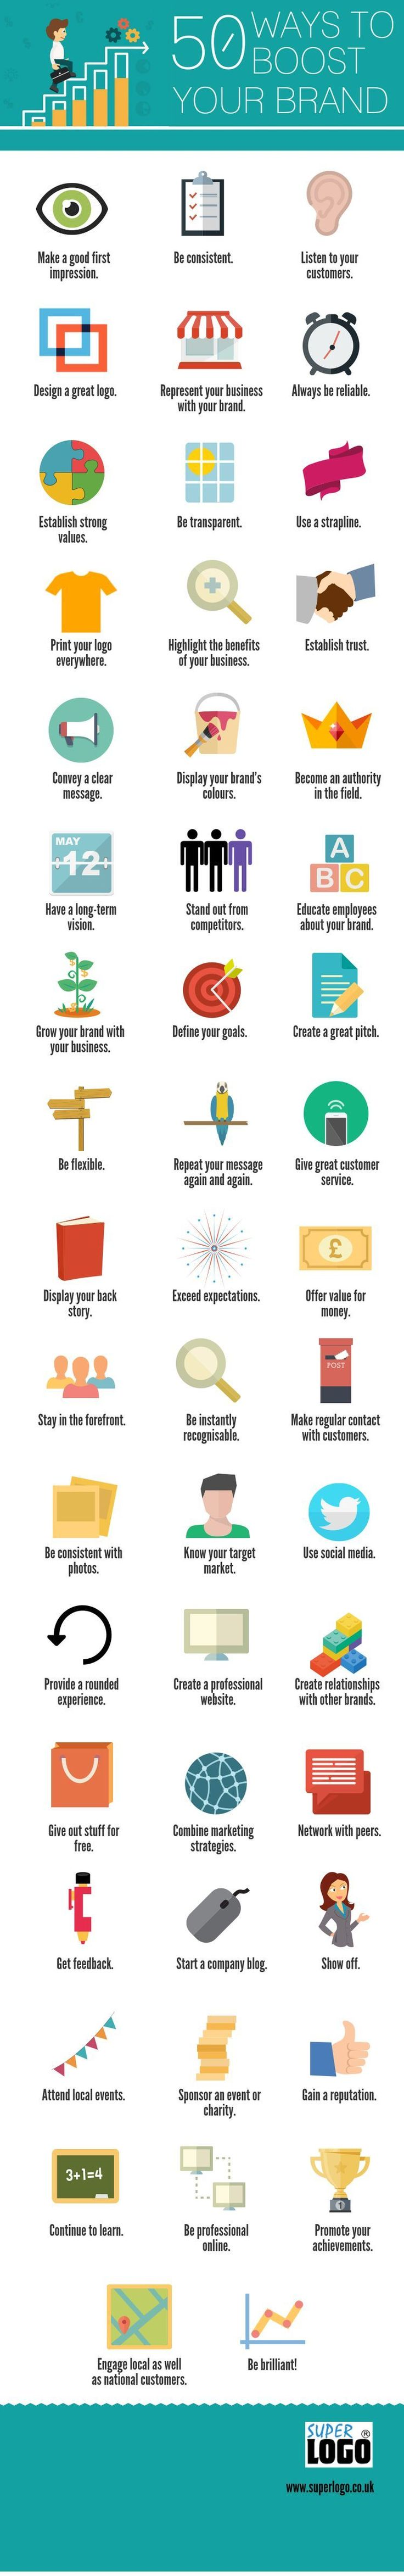 15 must see build your brand pins marketing marketing ideas and 50 ways to build your brand